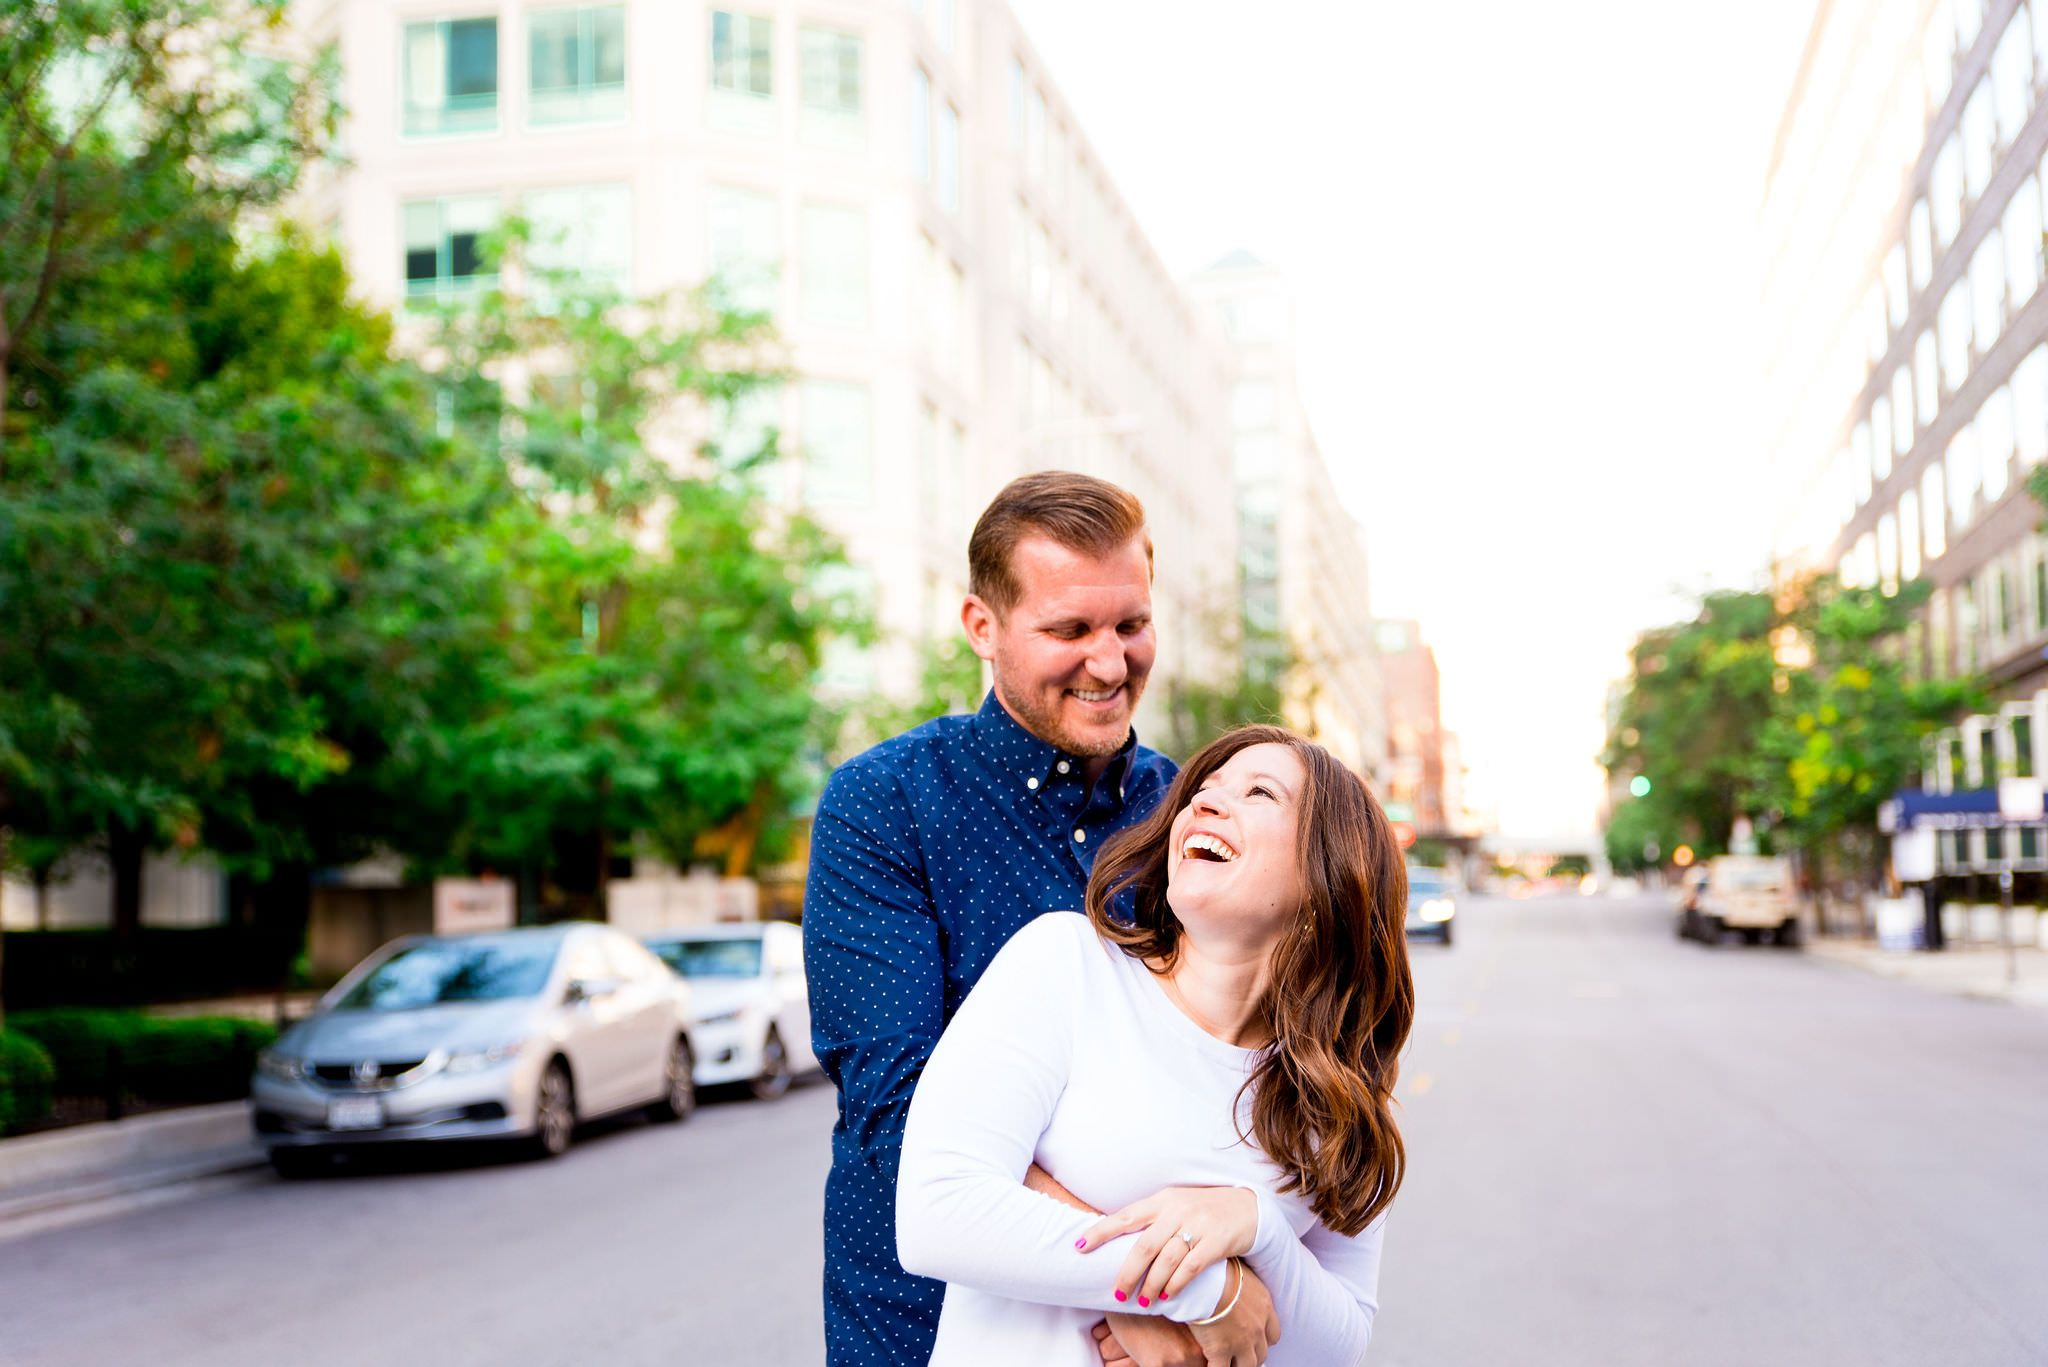 redhead man in navy shirt hugging woman in white sweater, laughing in the middle of street for sunset engagement picture